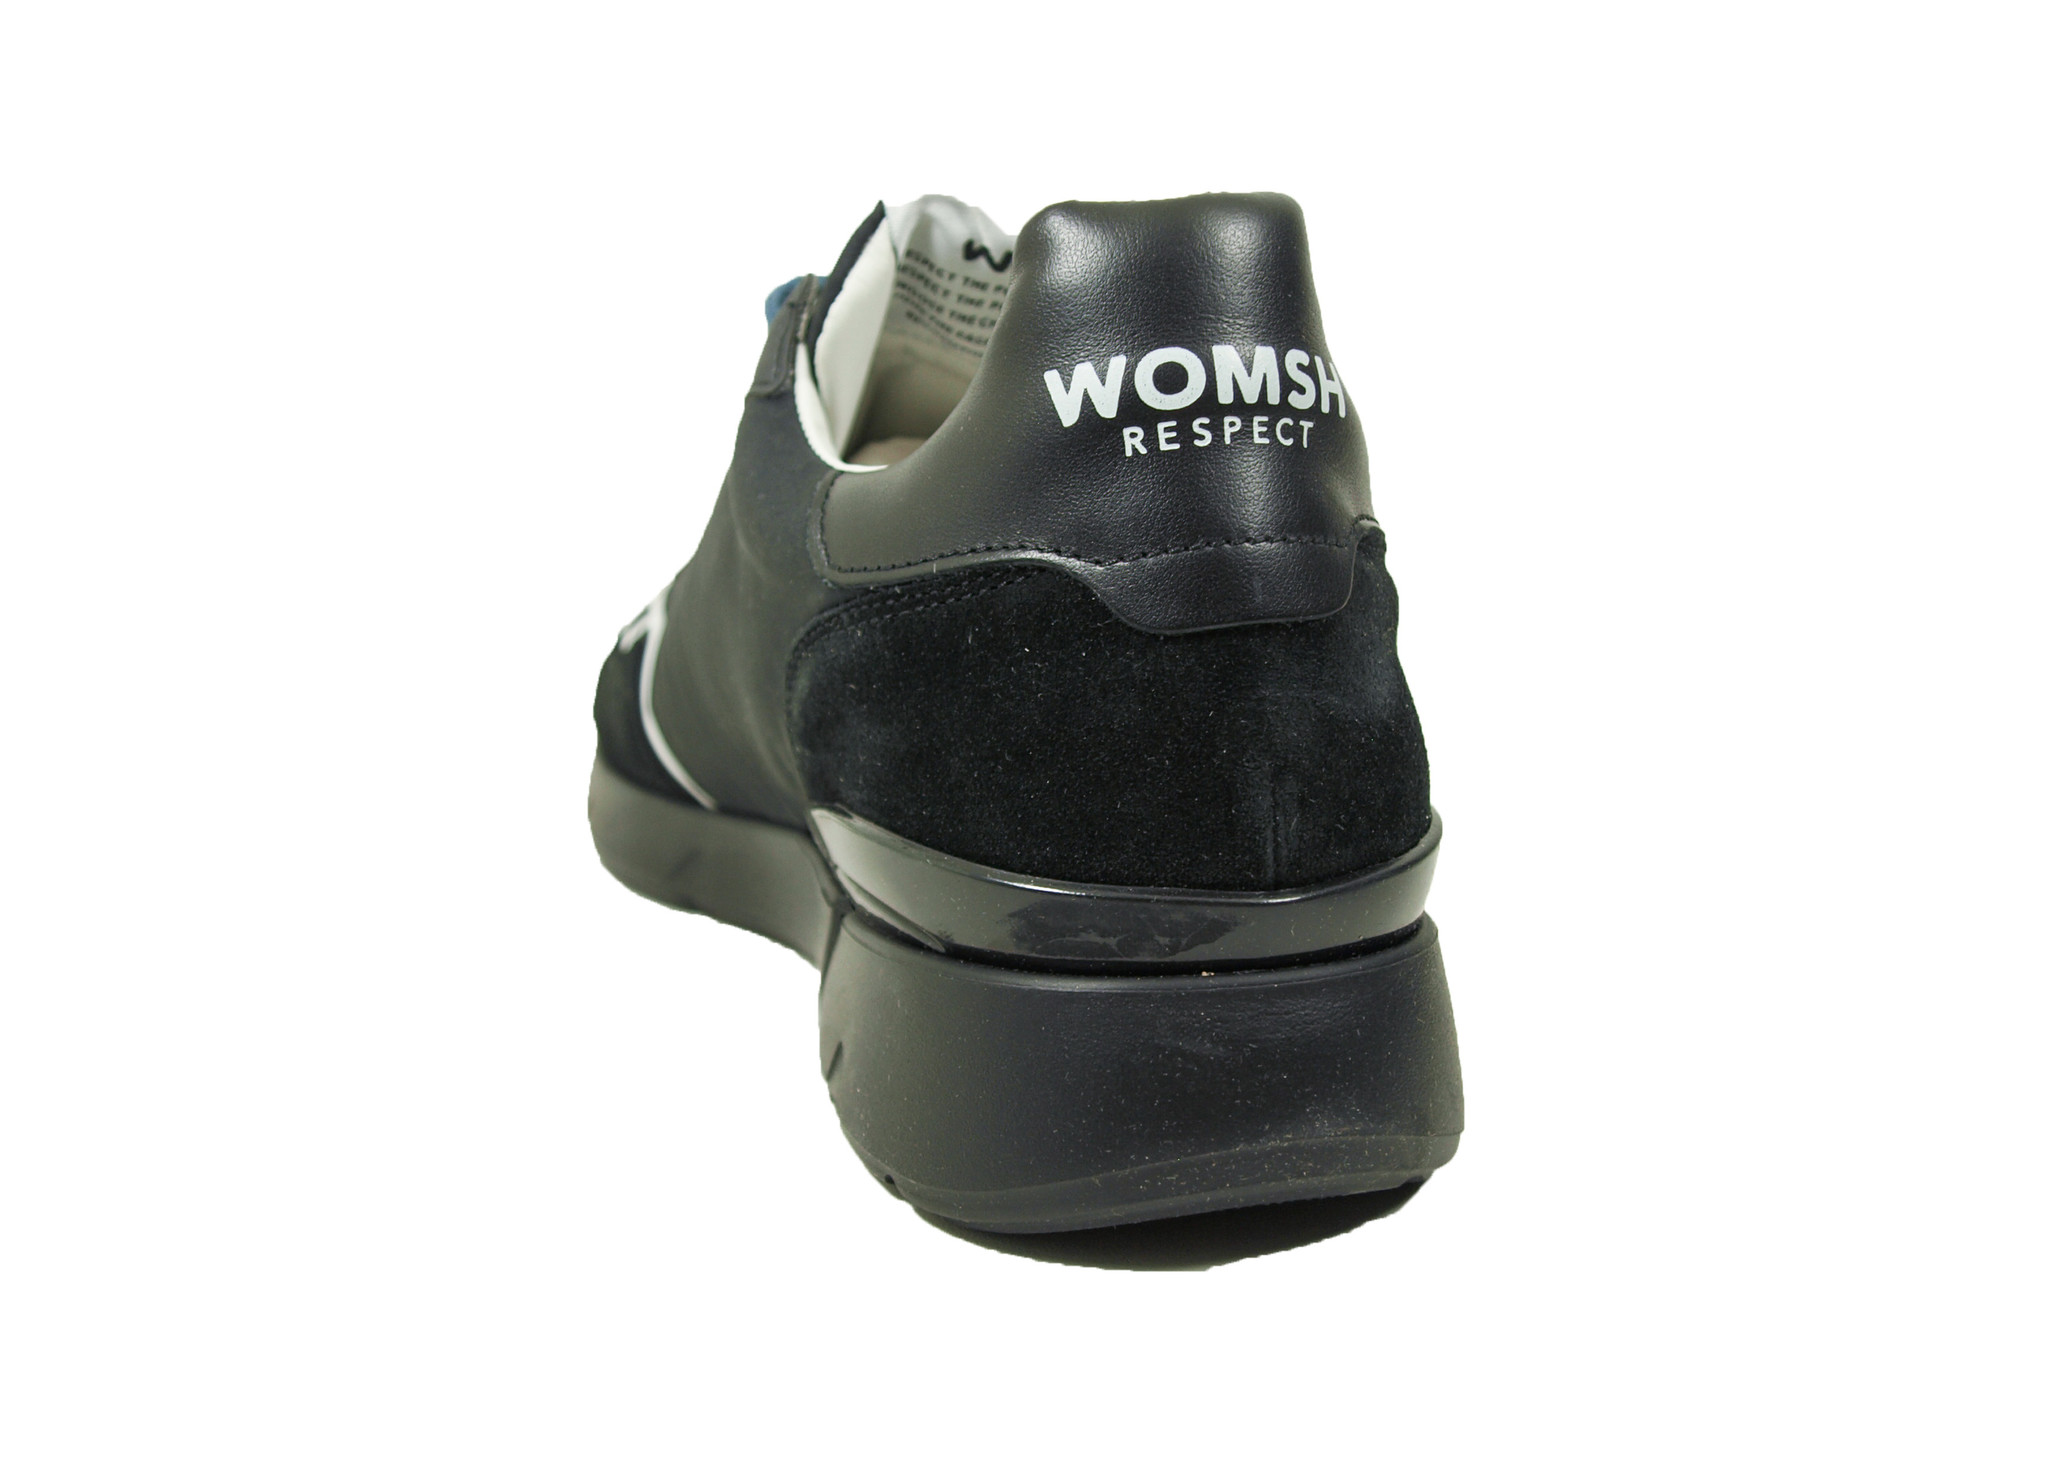 WOMSH WOMSH Sustainable Sneaker R202453 Runny Black